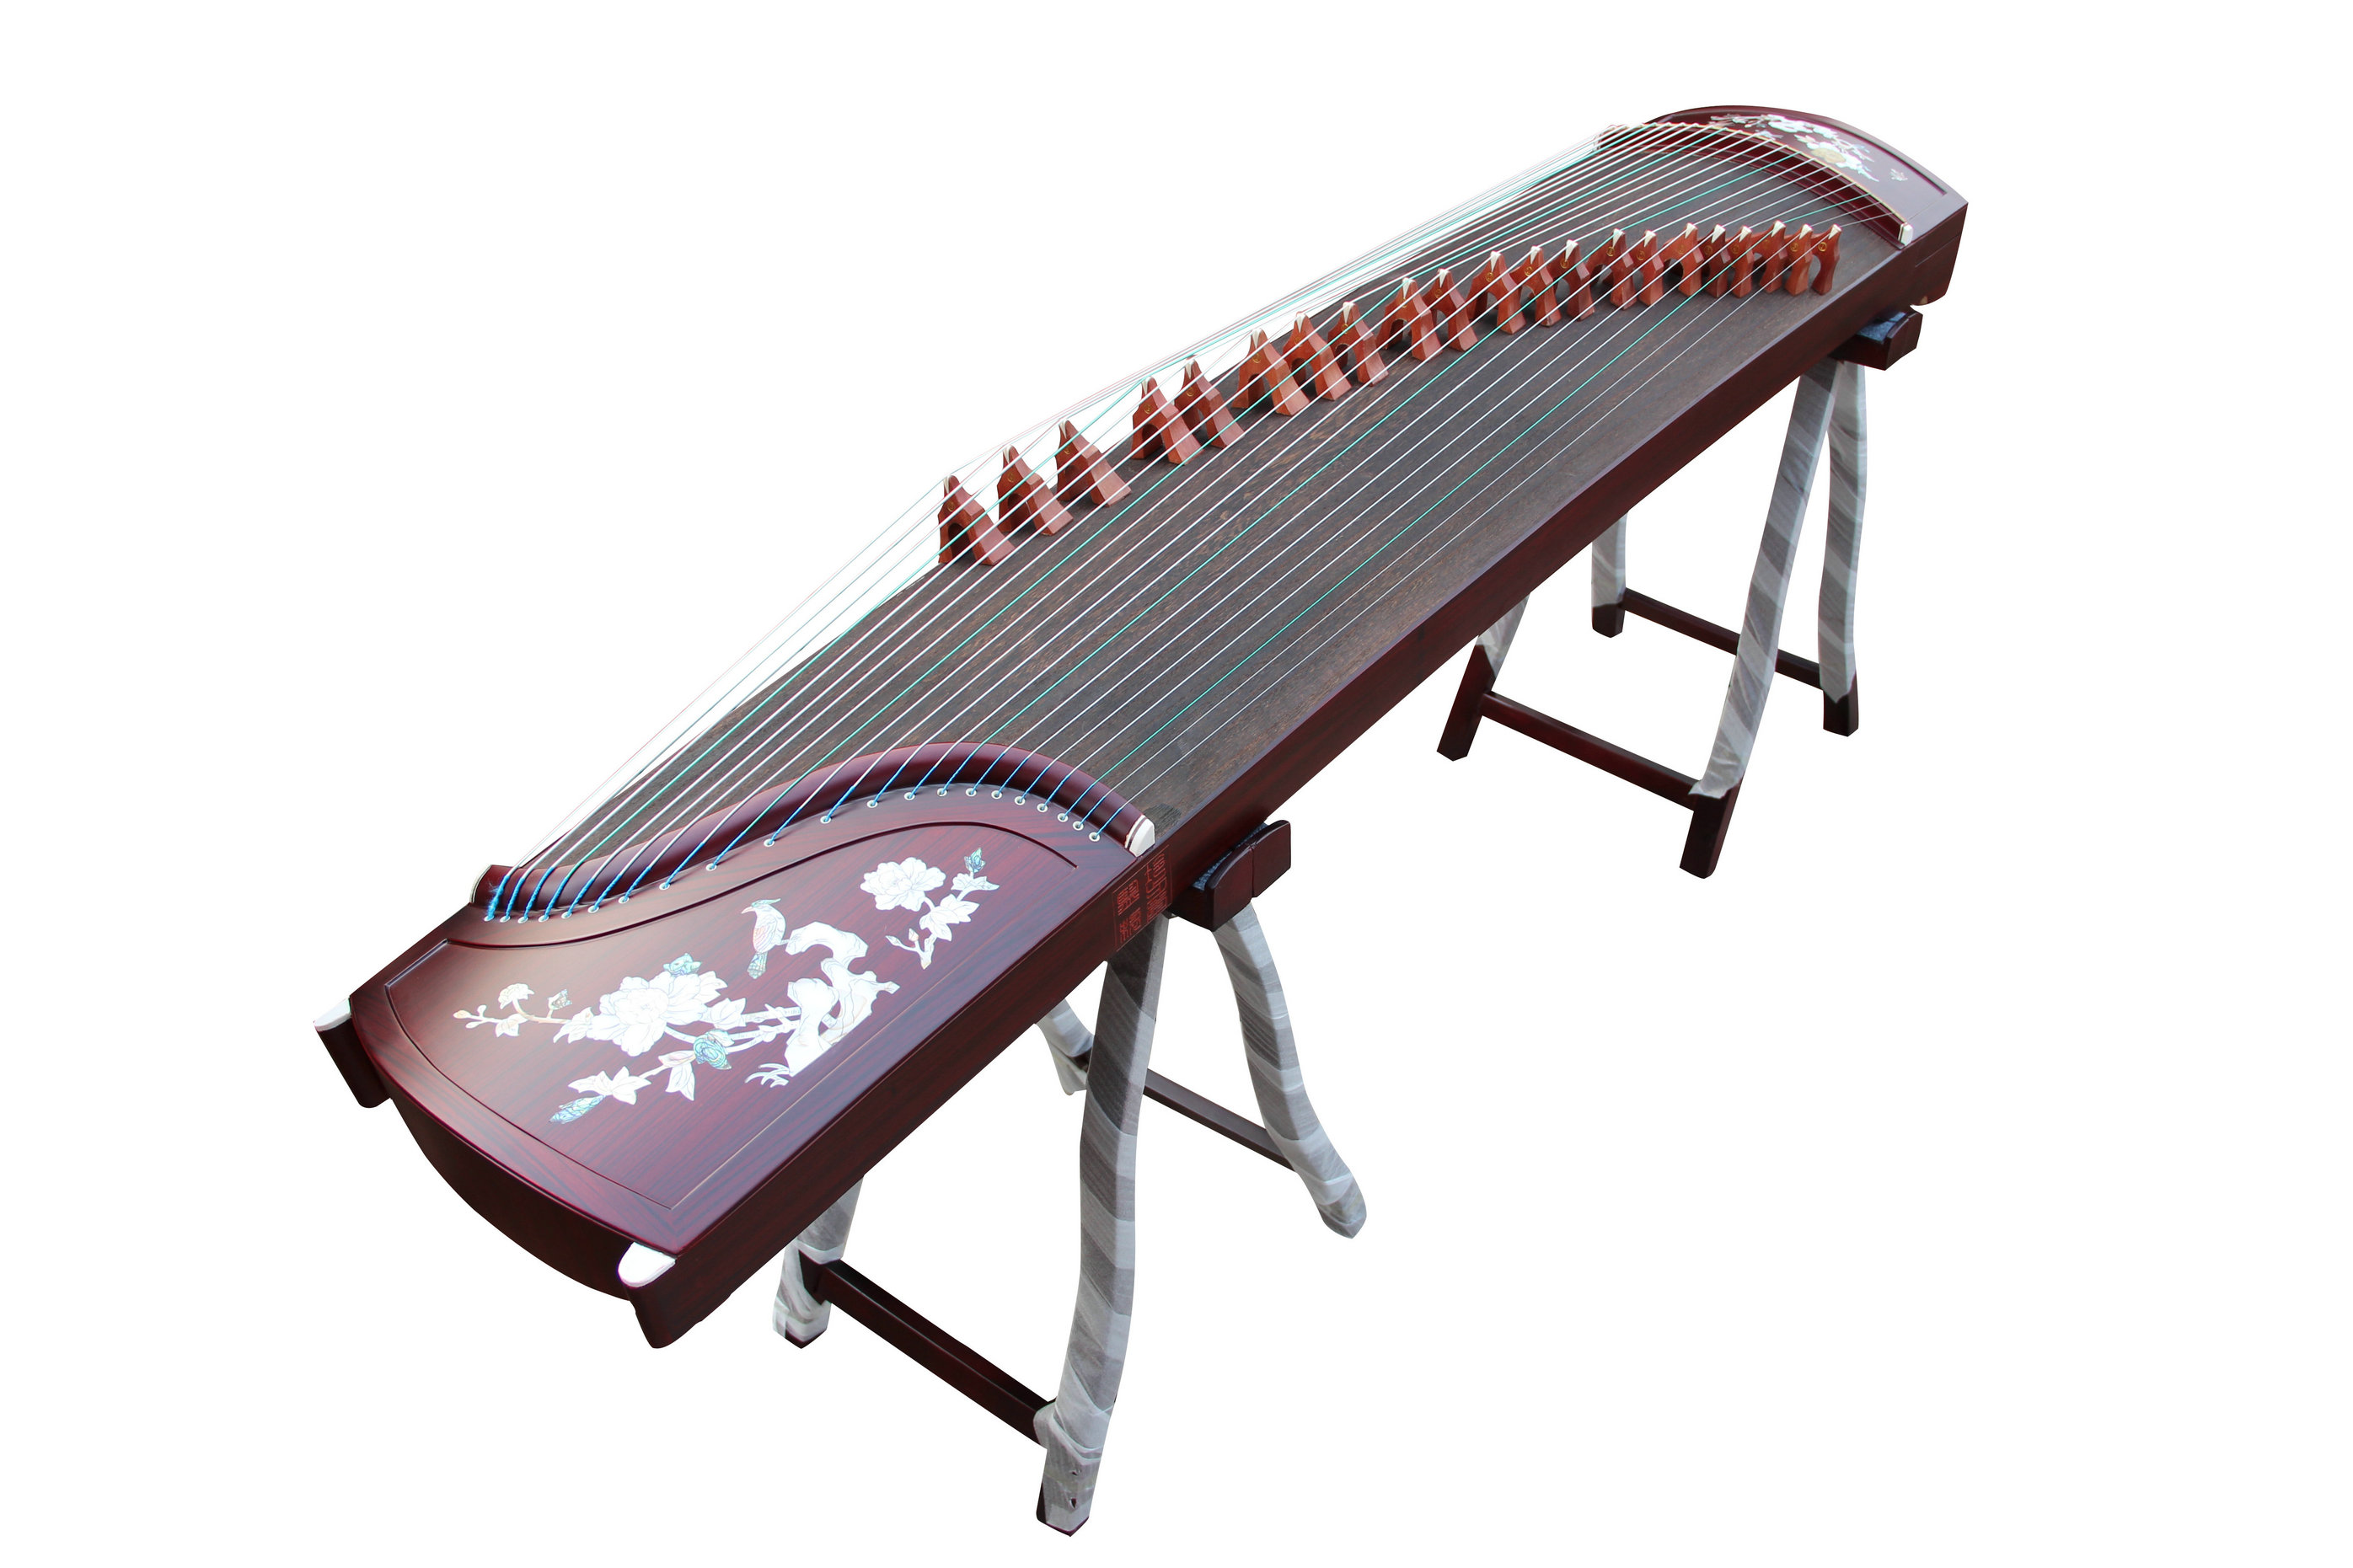 Professional Bird & Flower Sandalwood Guzheng Instrument Chinese Zither